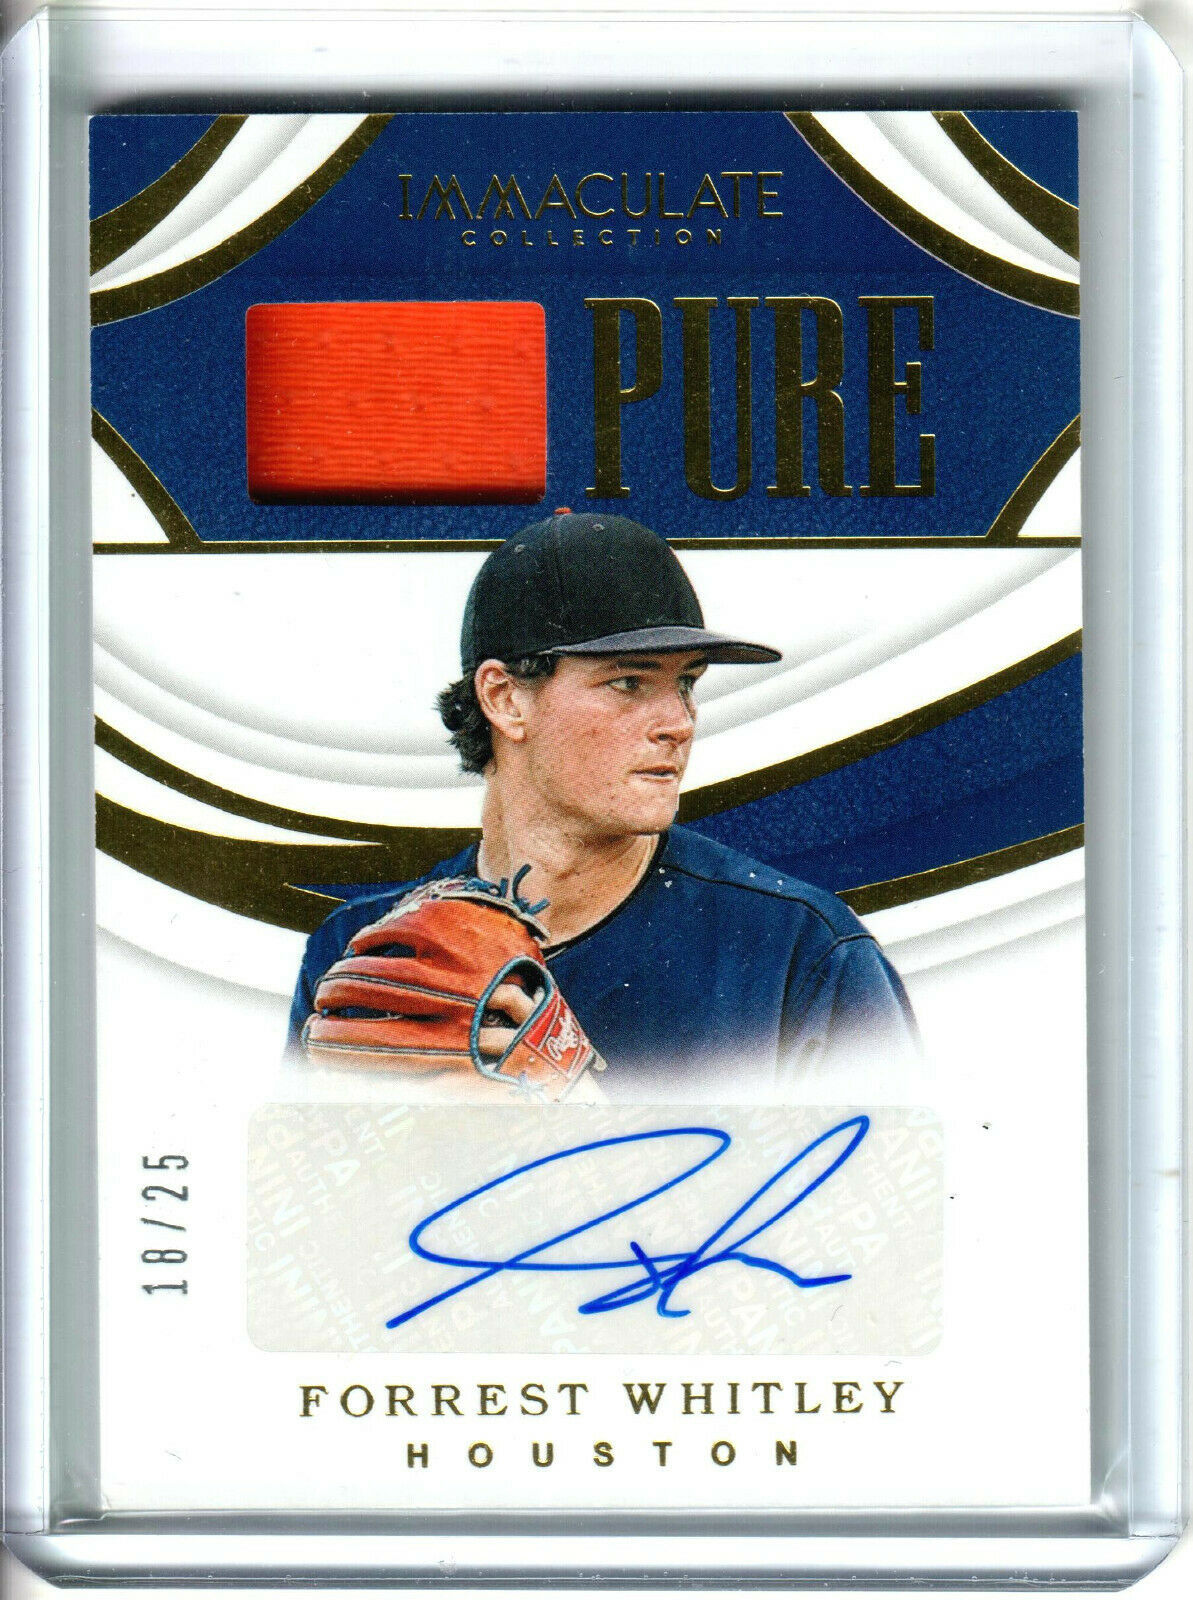 Primary image for 2019 Panini Immaculate Forrest Whitley Pure Patch Auto /25